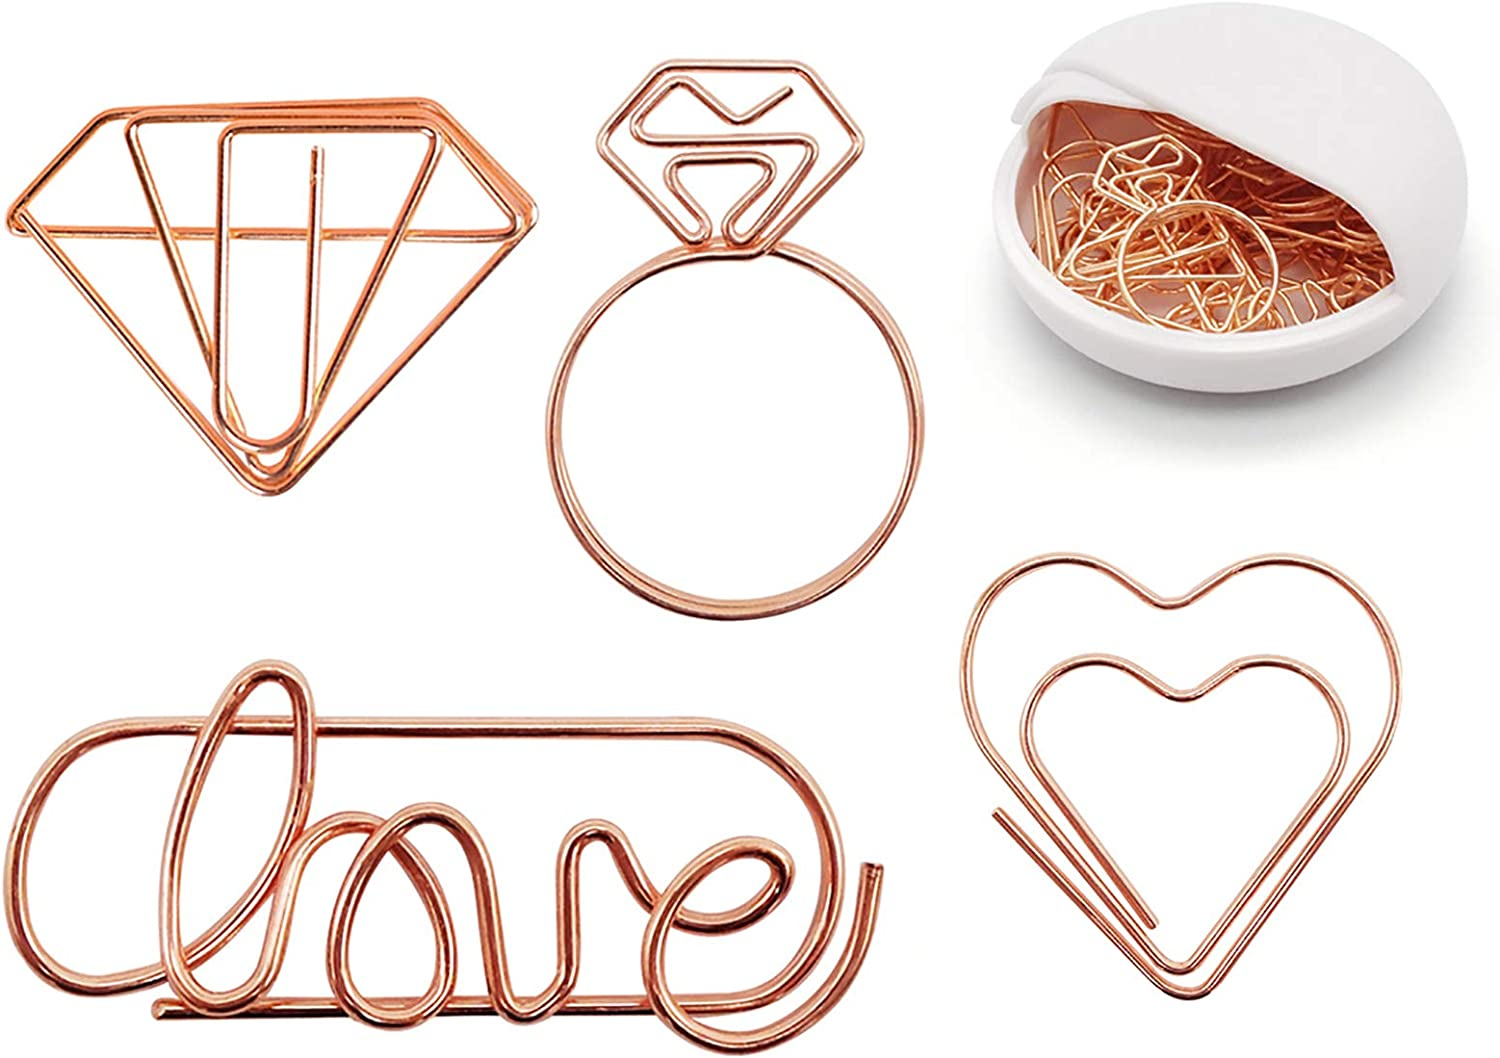 Cute Paper Clips - 20Pcs: 5 love + 5 heart + 5 Diamond + 5 Diamond Ring, Funny Bookmark Marking Clip for Office School Wedding Party Invitation Valentine Decoration - Assorted Small Planner PaperClips